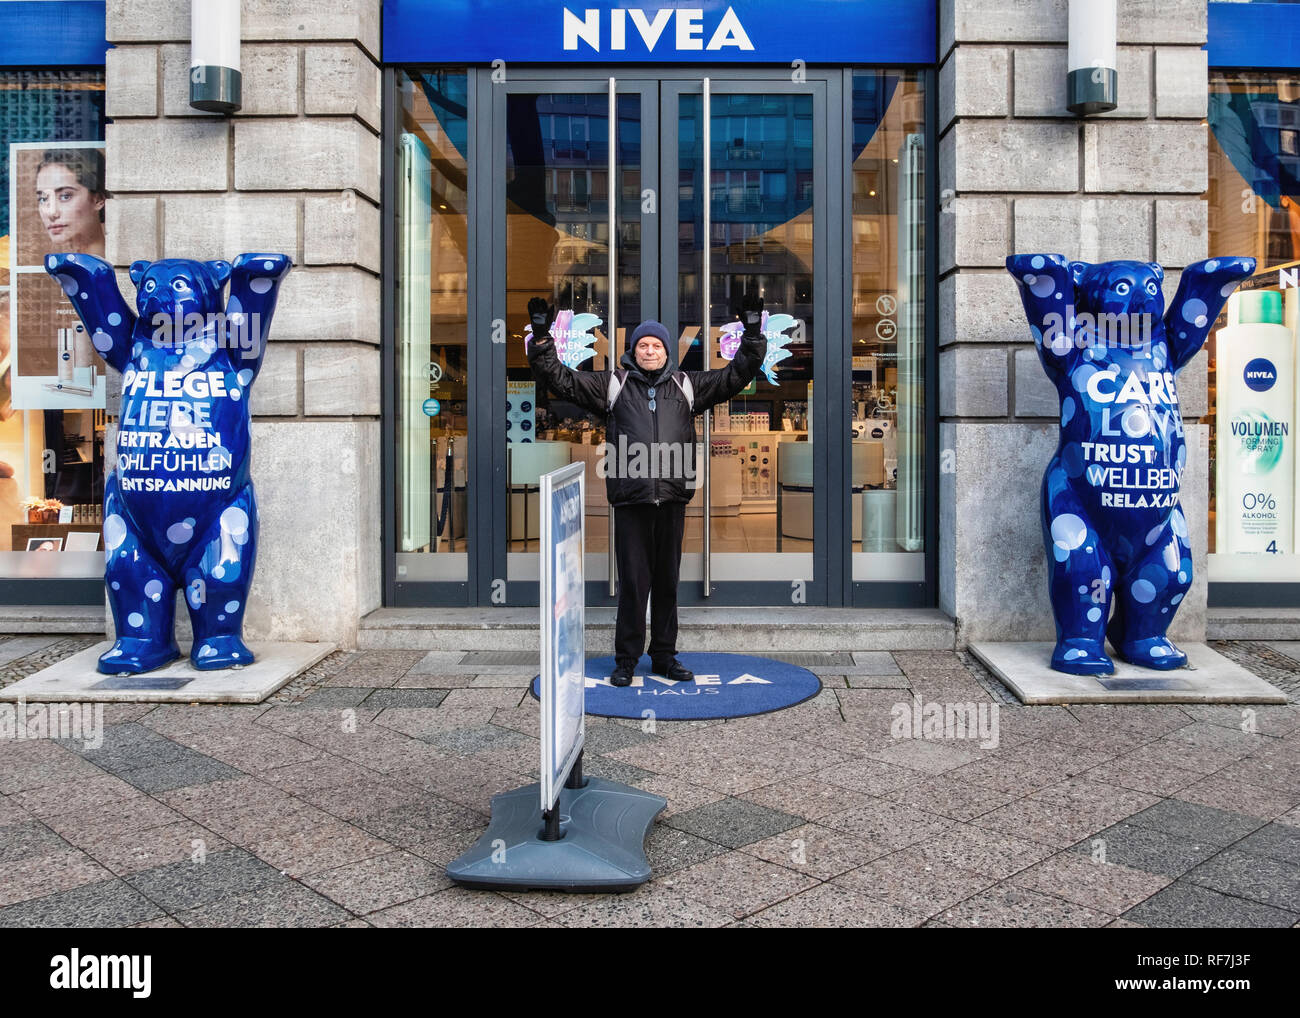 Berlin,Mitte. Elderly male tourist mimics two blue Buddy Bears outside Nivea Shop in Unter den Linden Stock Photo